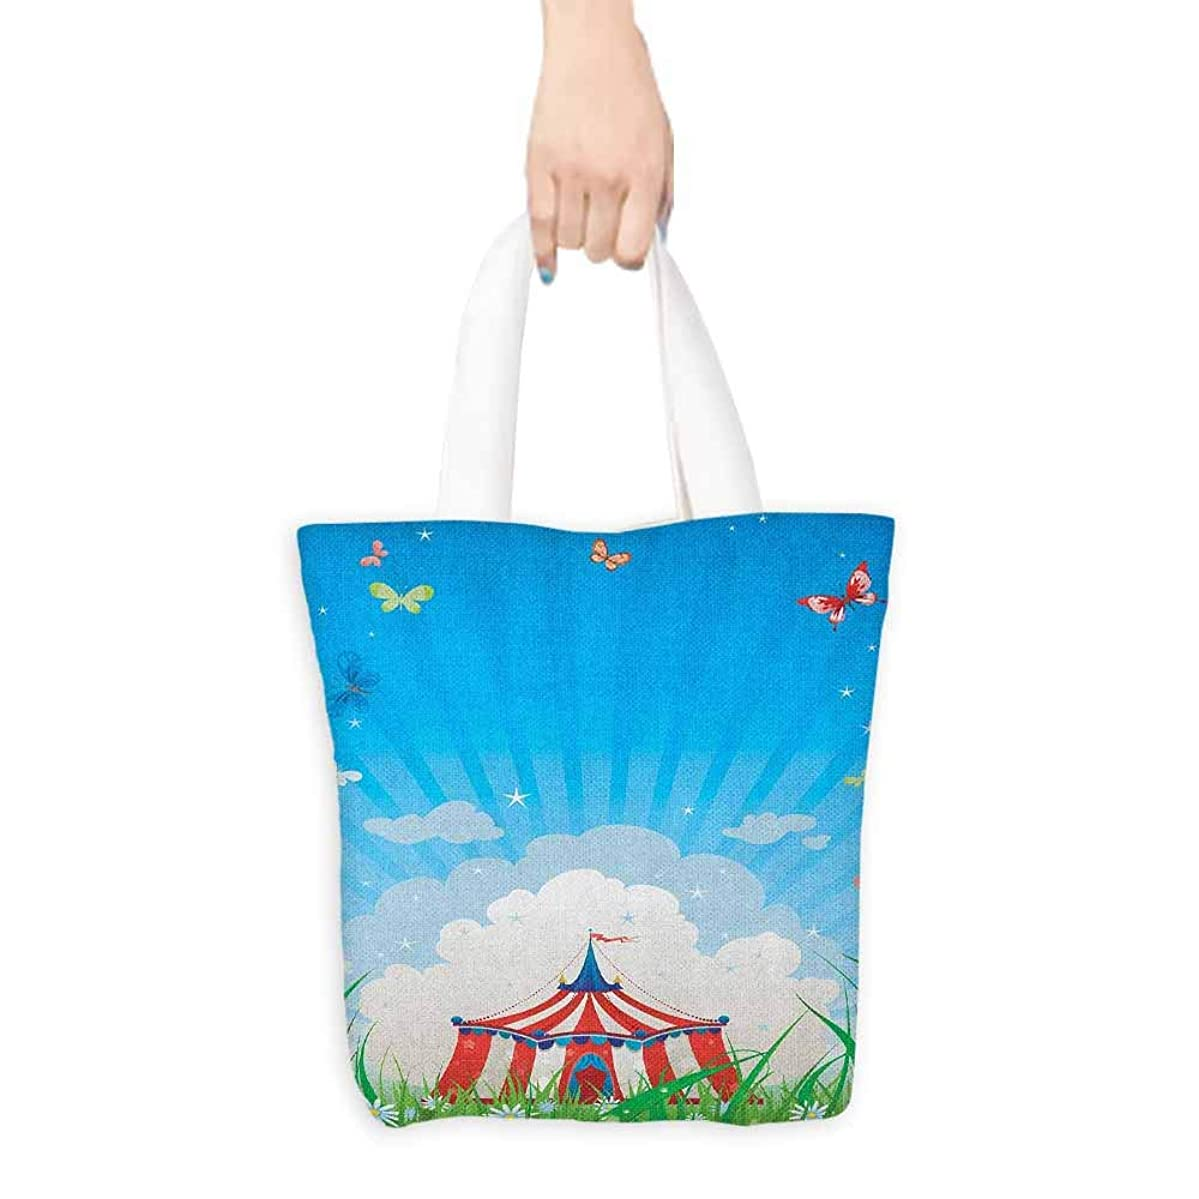 Work package Circus Travelling Circus Tent with Clouds Butterflies and Clear Sky Festival Happiness Coin cash wallet 16.5